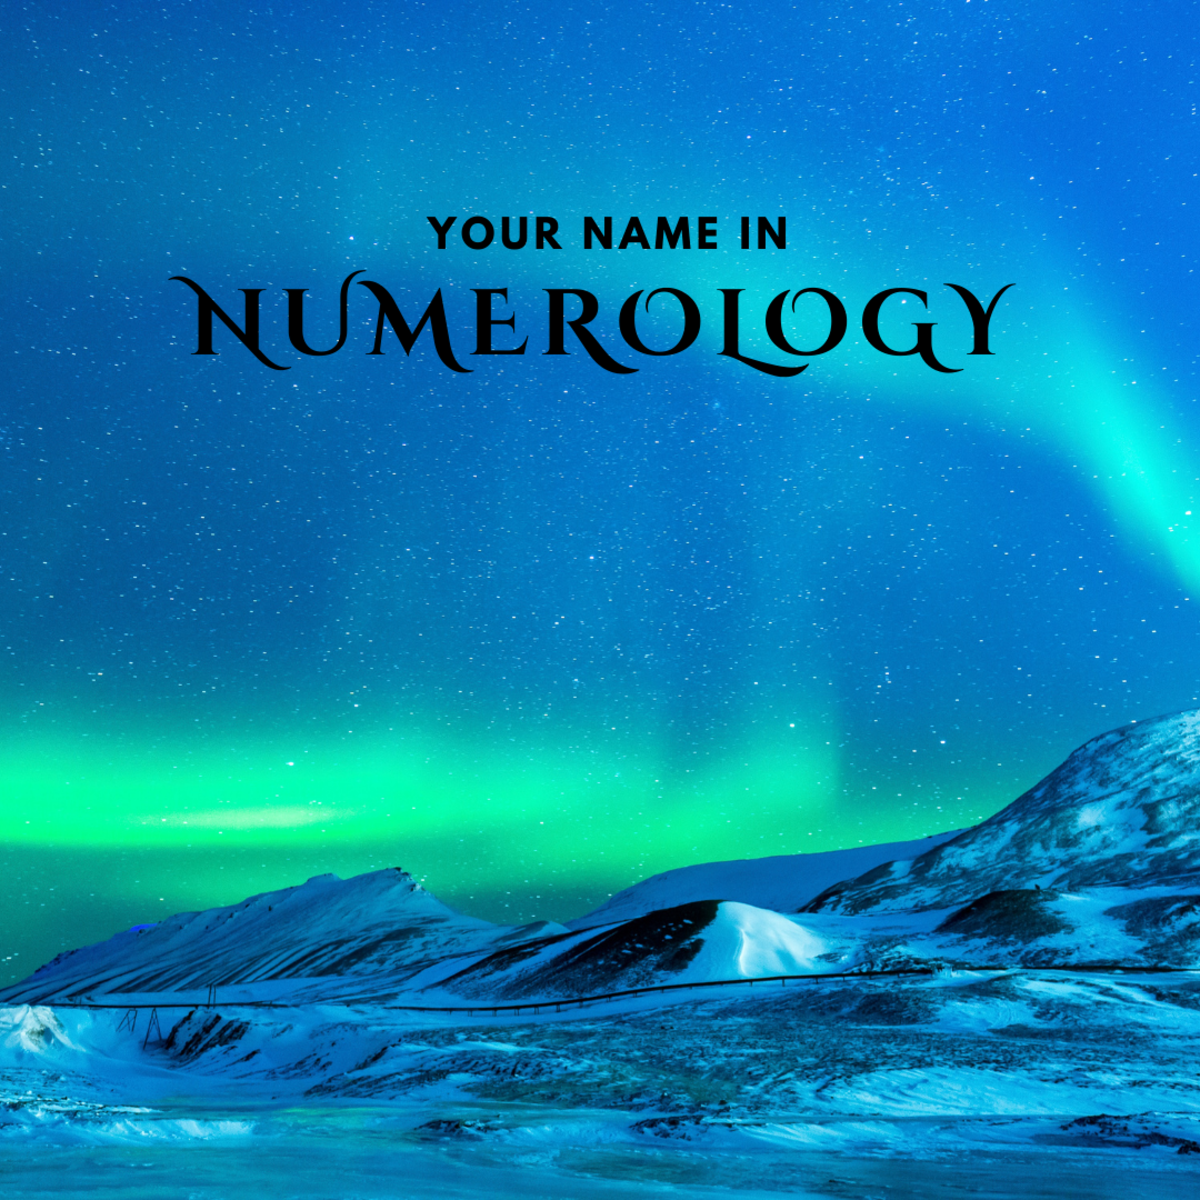 Numerology: Discover the Vibration and Energy of Your Name